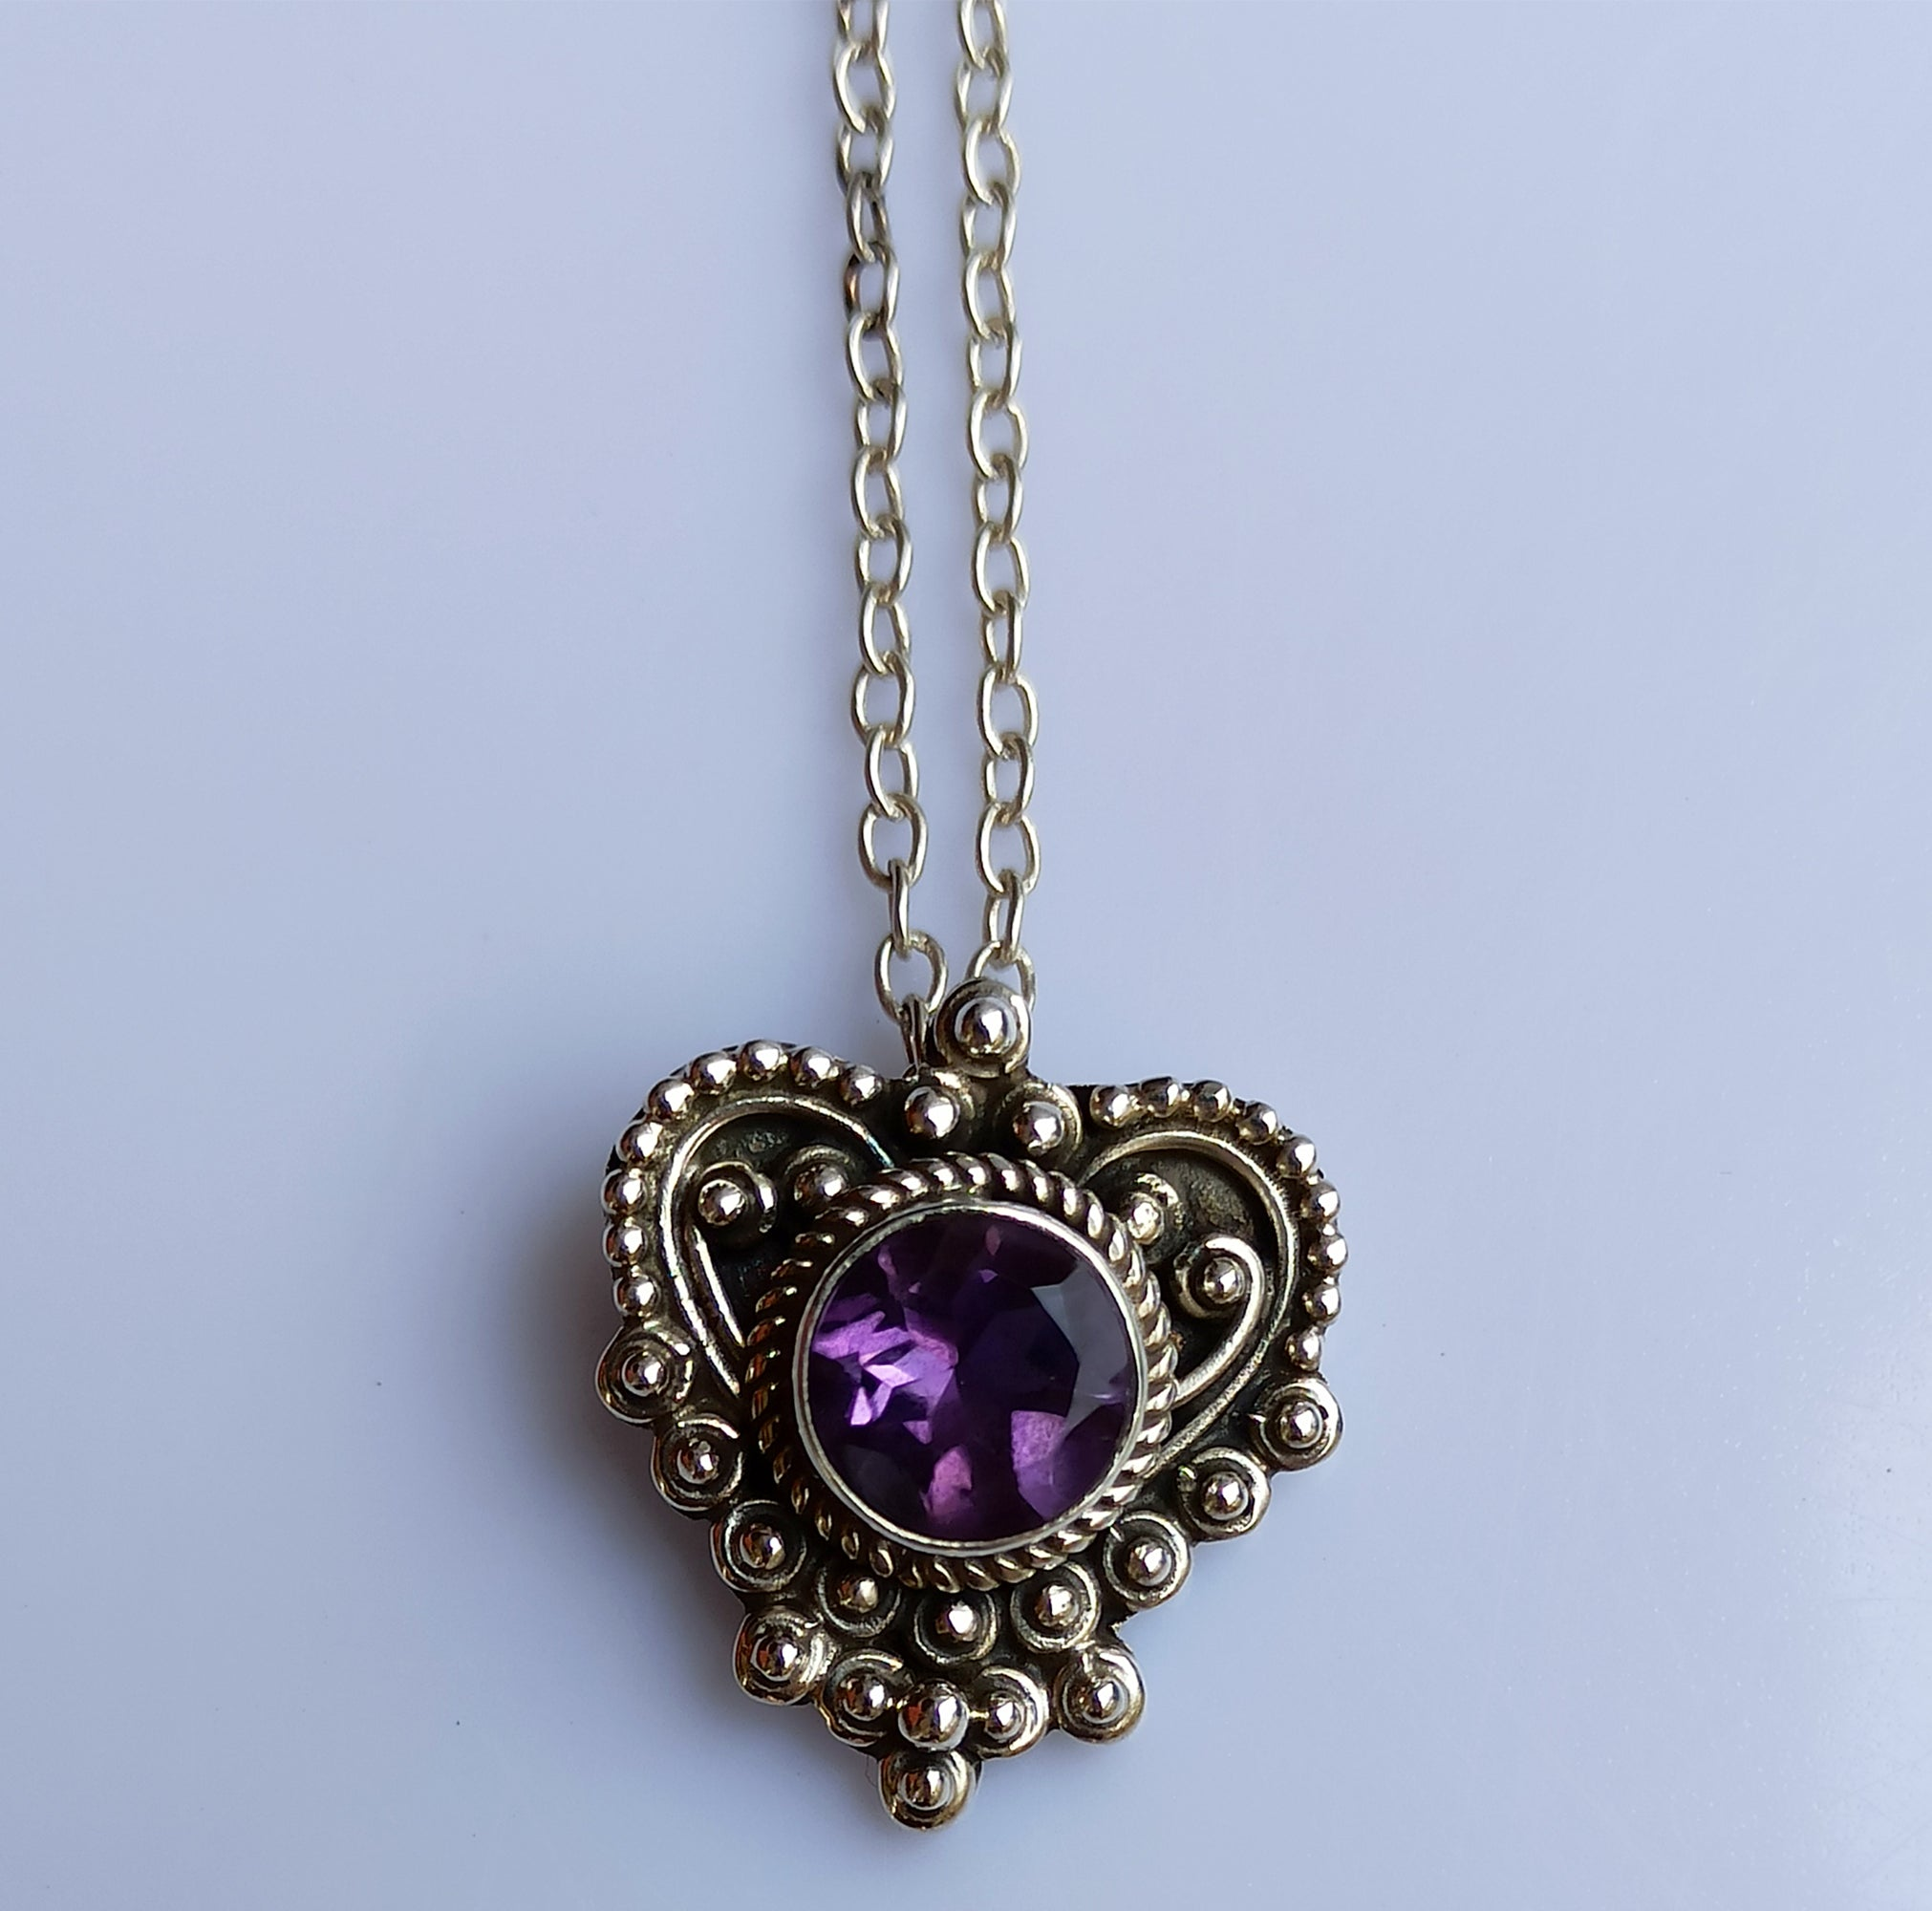 Amethyst 925 Solid Sterling Silver Handmade Heart Pendant with Chain